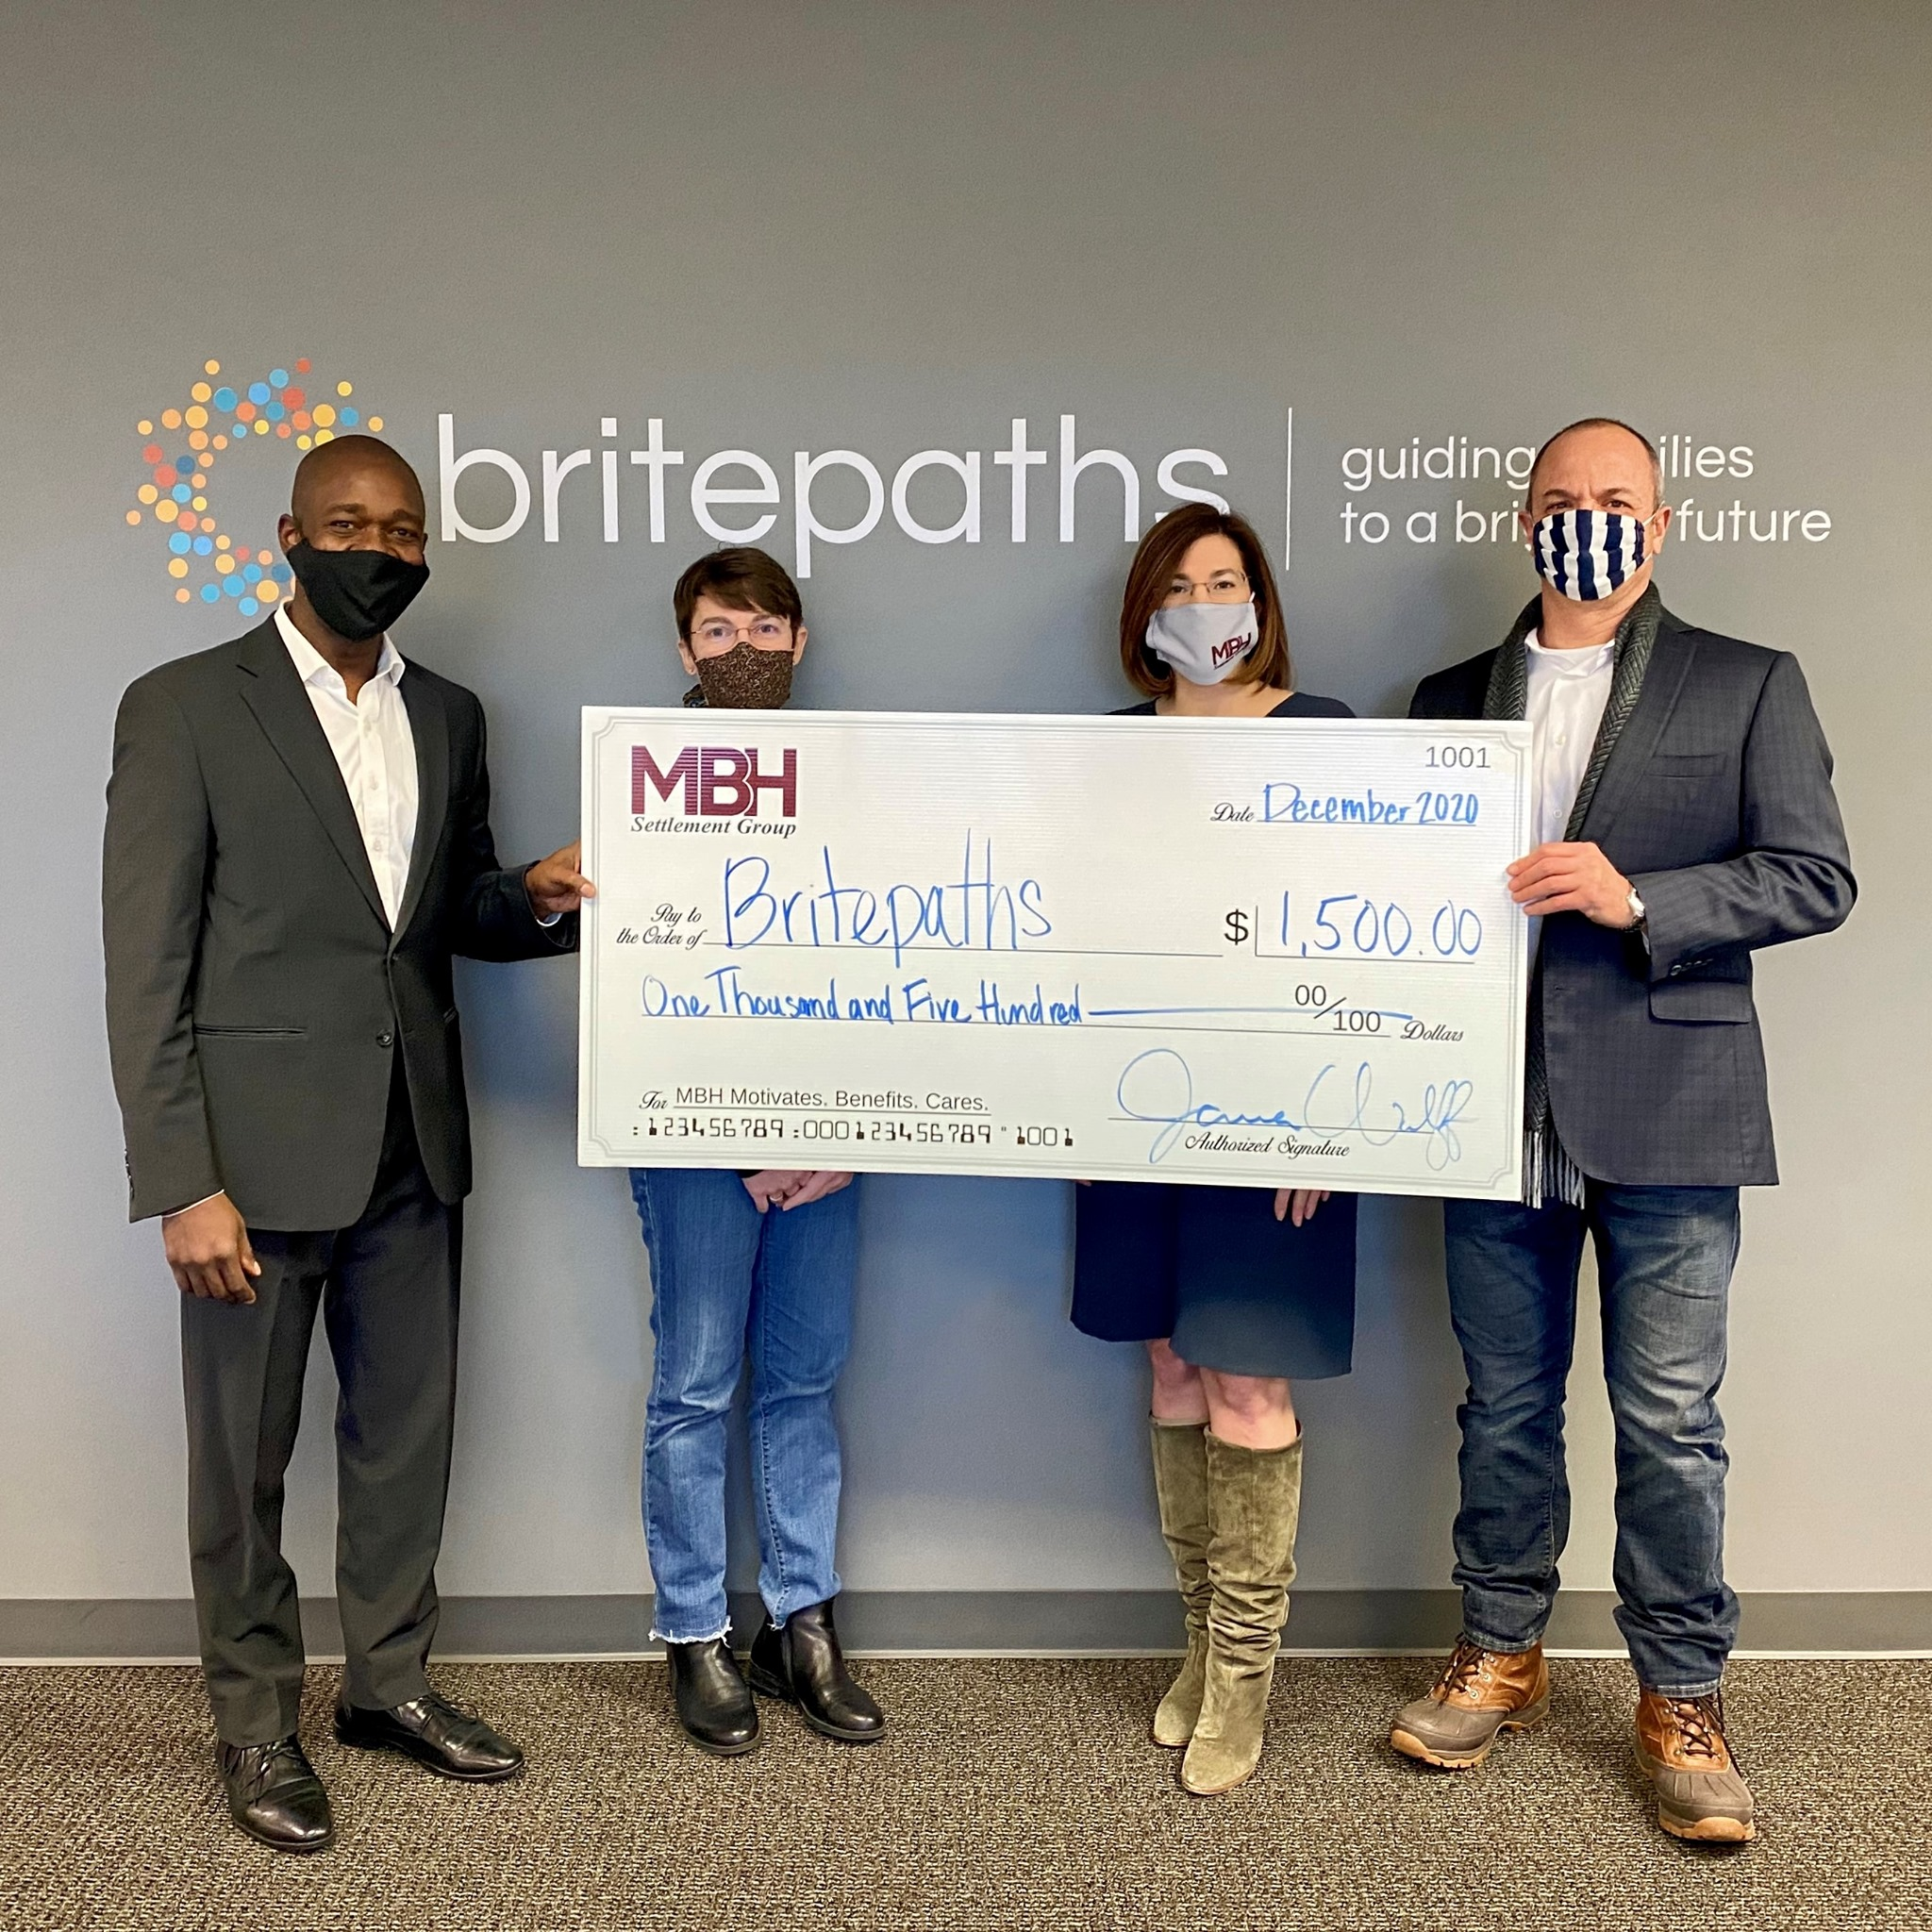 MBH Donates A Percentage of Every Close to BritePaths